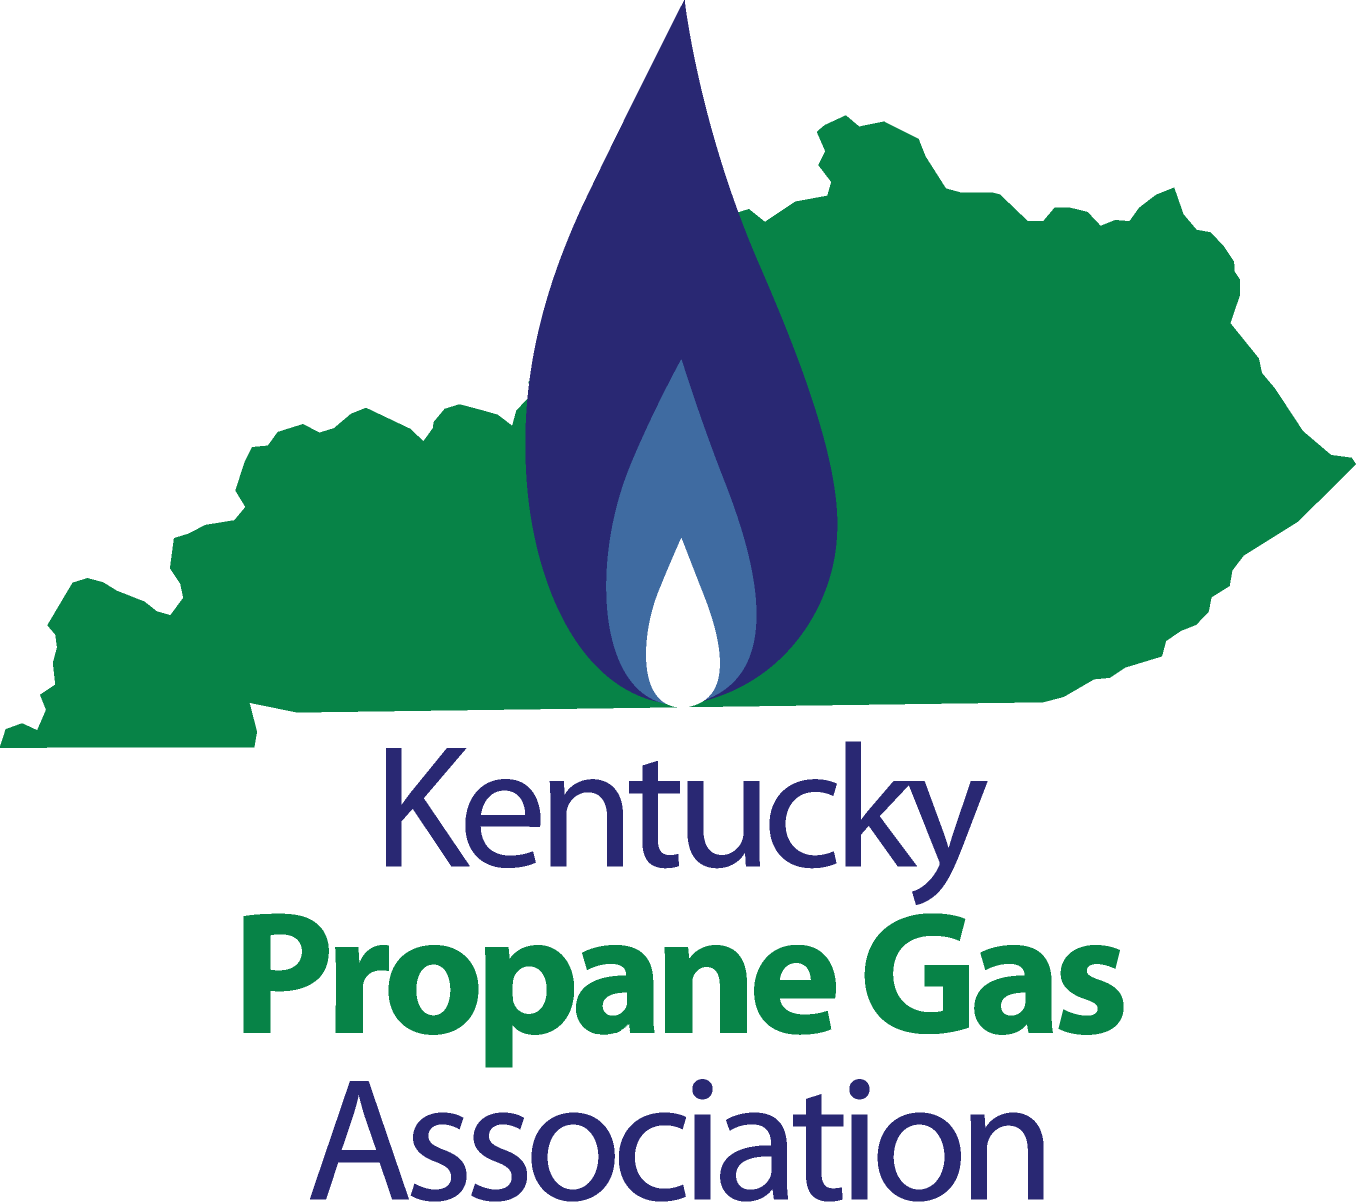 Kentucky Propane Gas Association